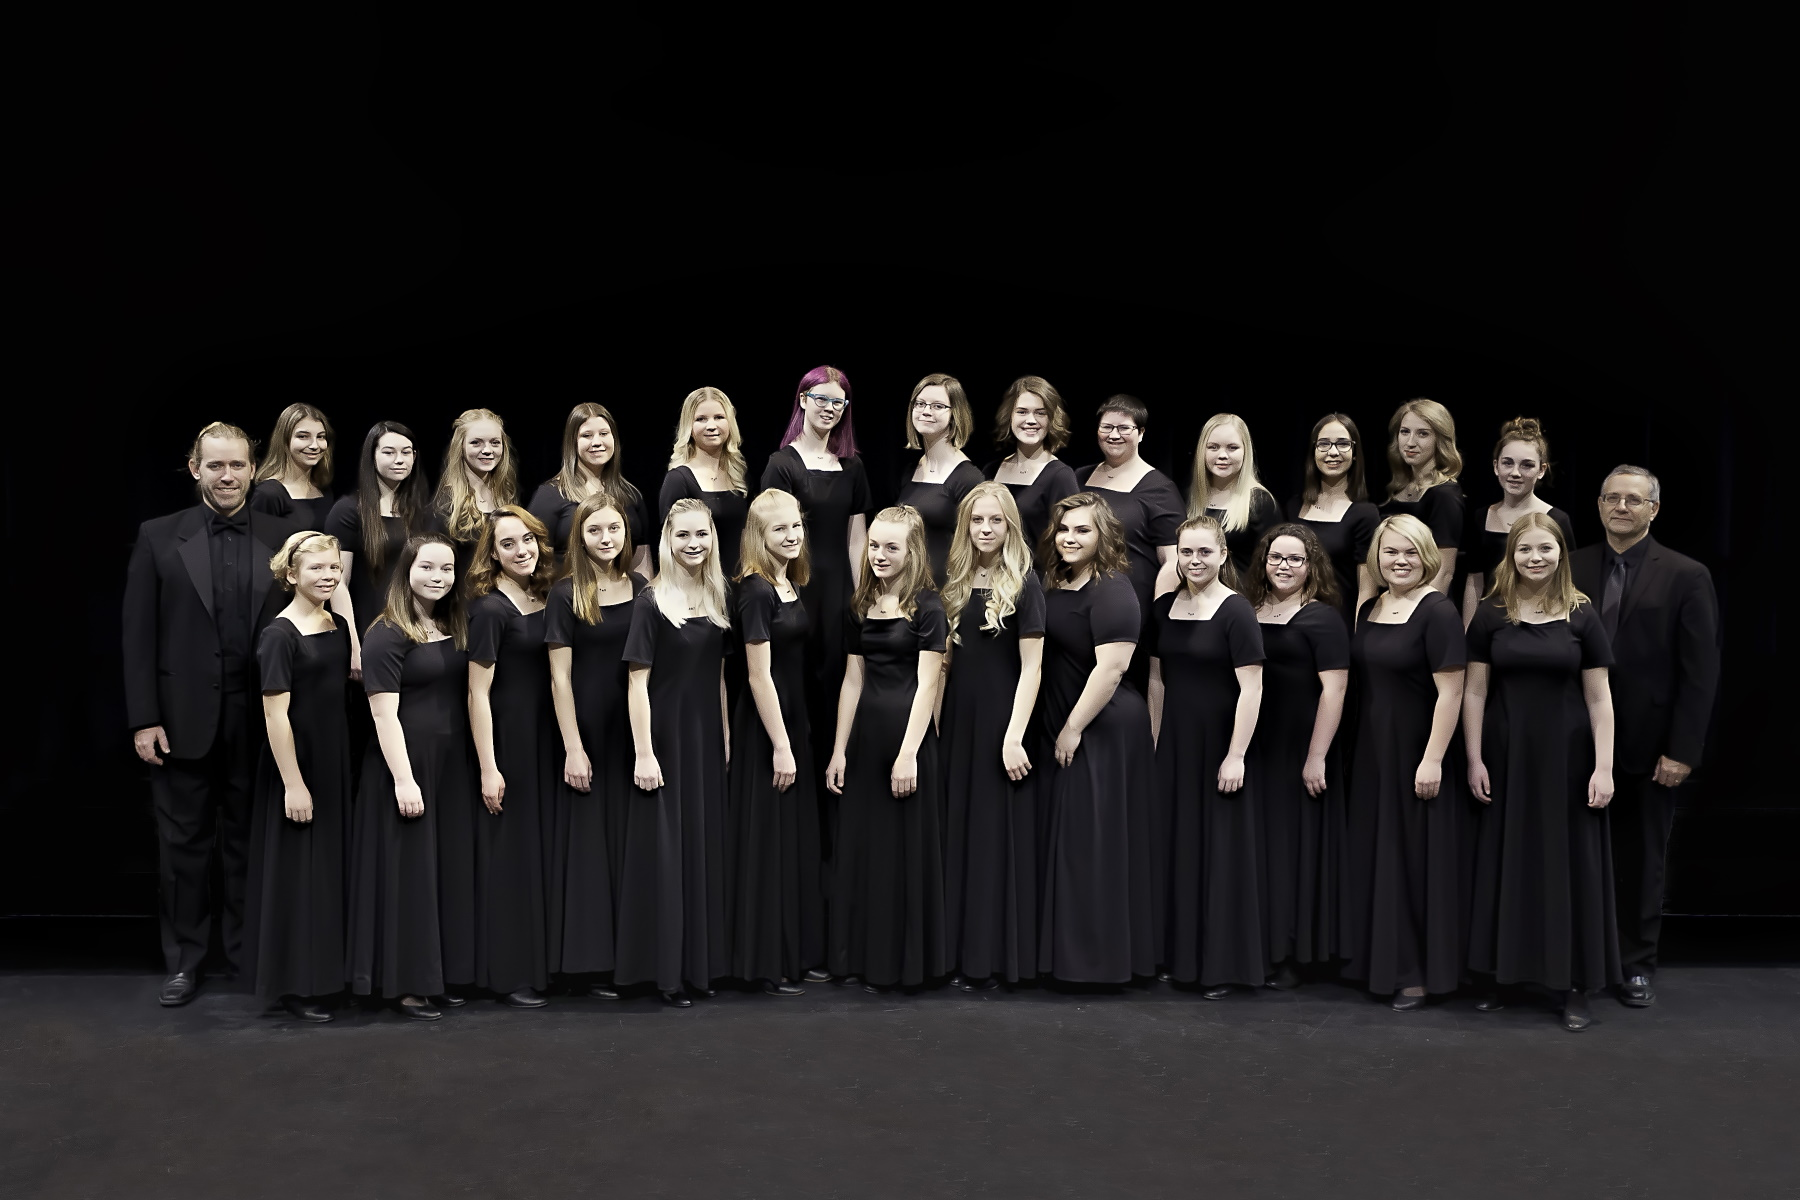 Medicine Hat College Girls' Choir